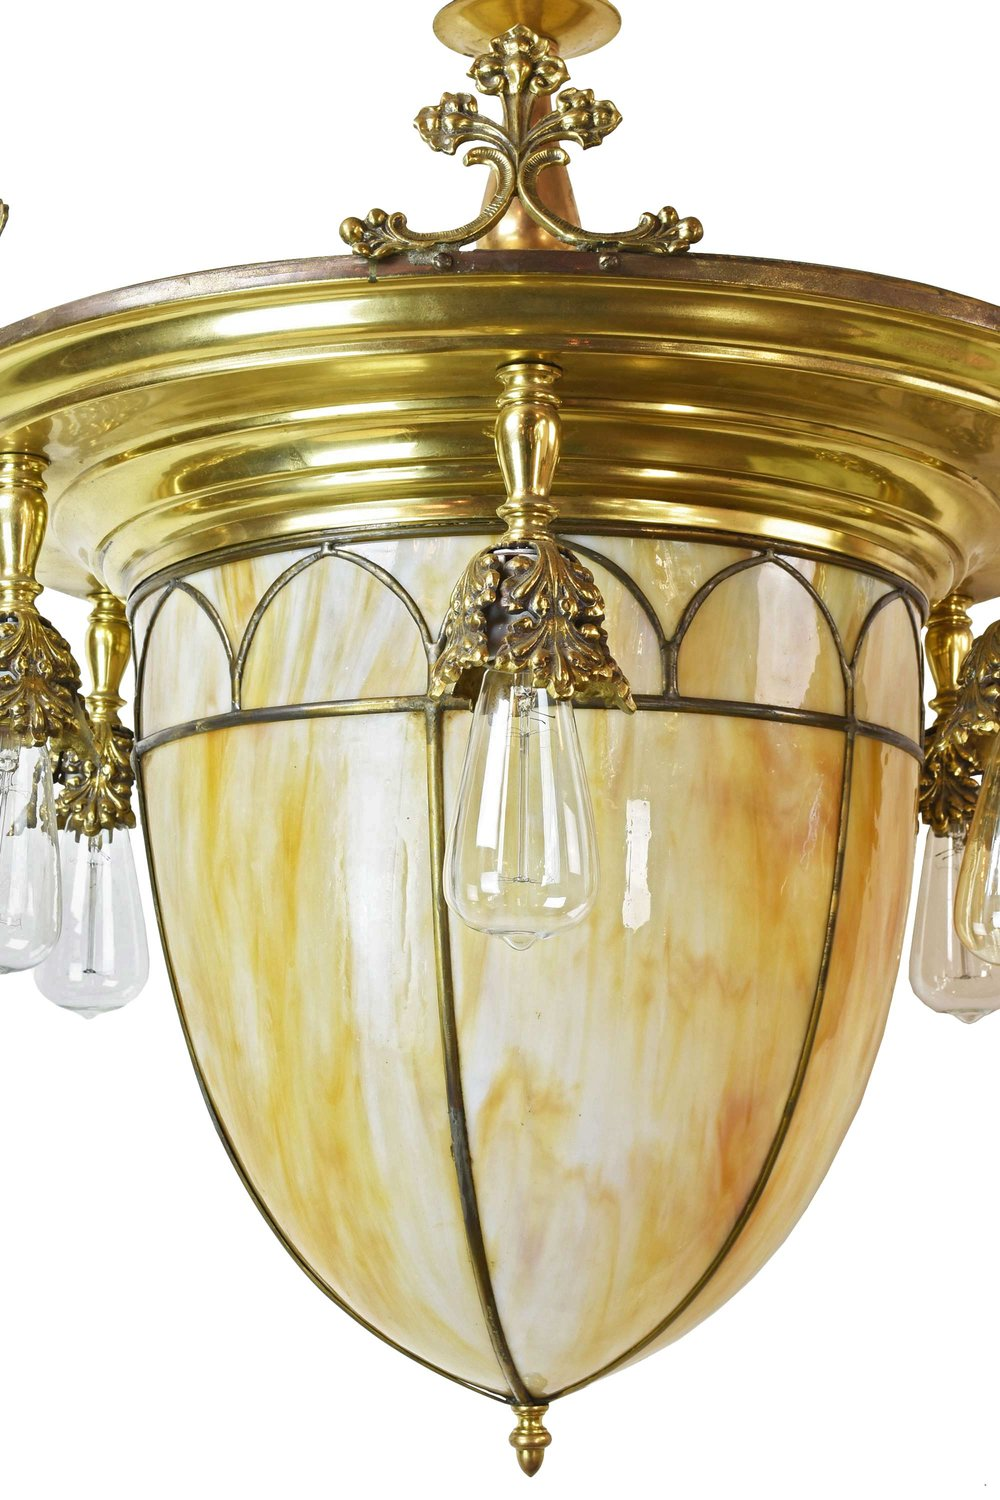 46609-6-light-brass-chandalier-with-slag-glass-shade-bulb.jpg